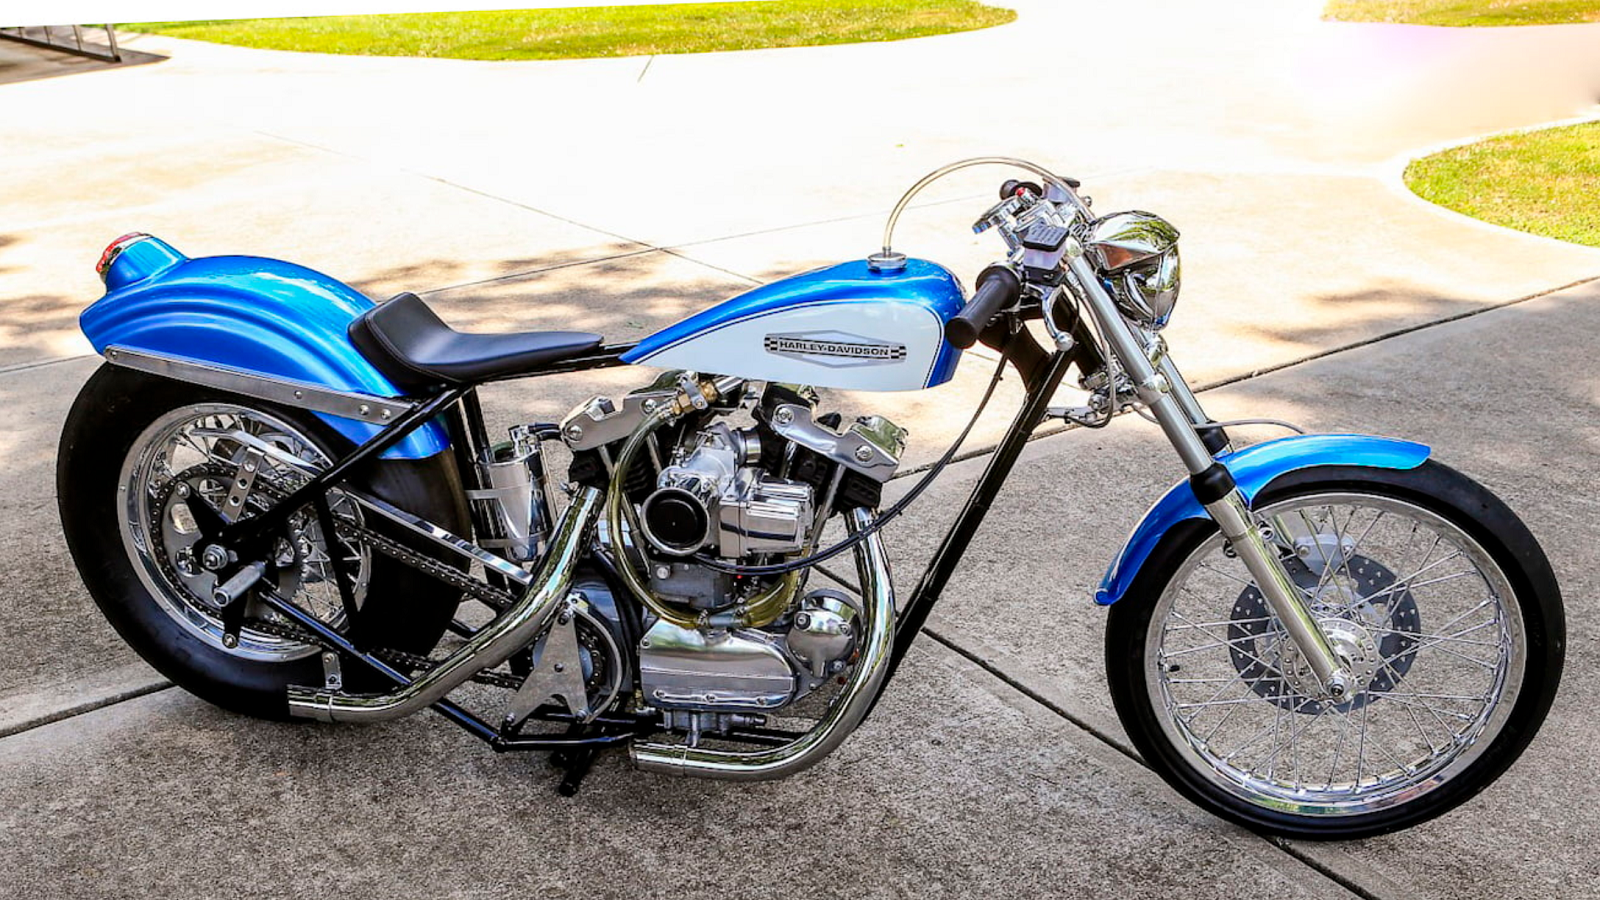 Vintage Harley Drag Bike Is the Epitome of Show and Go